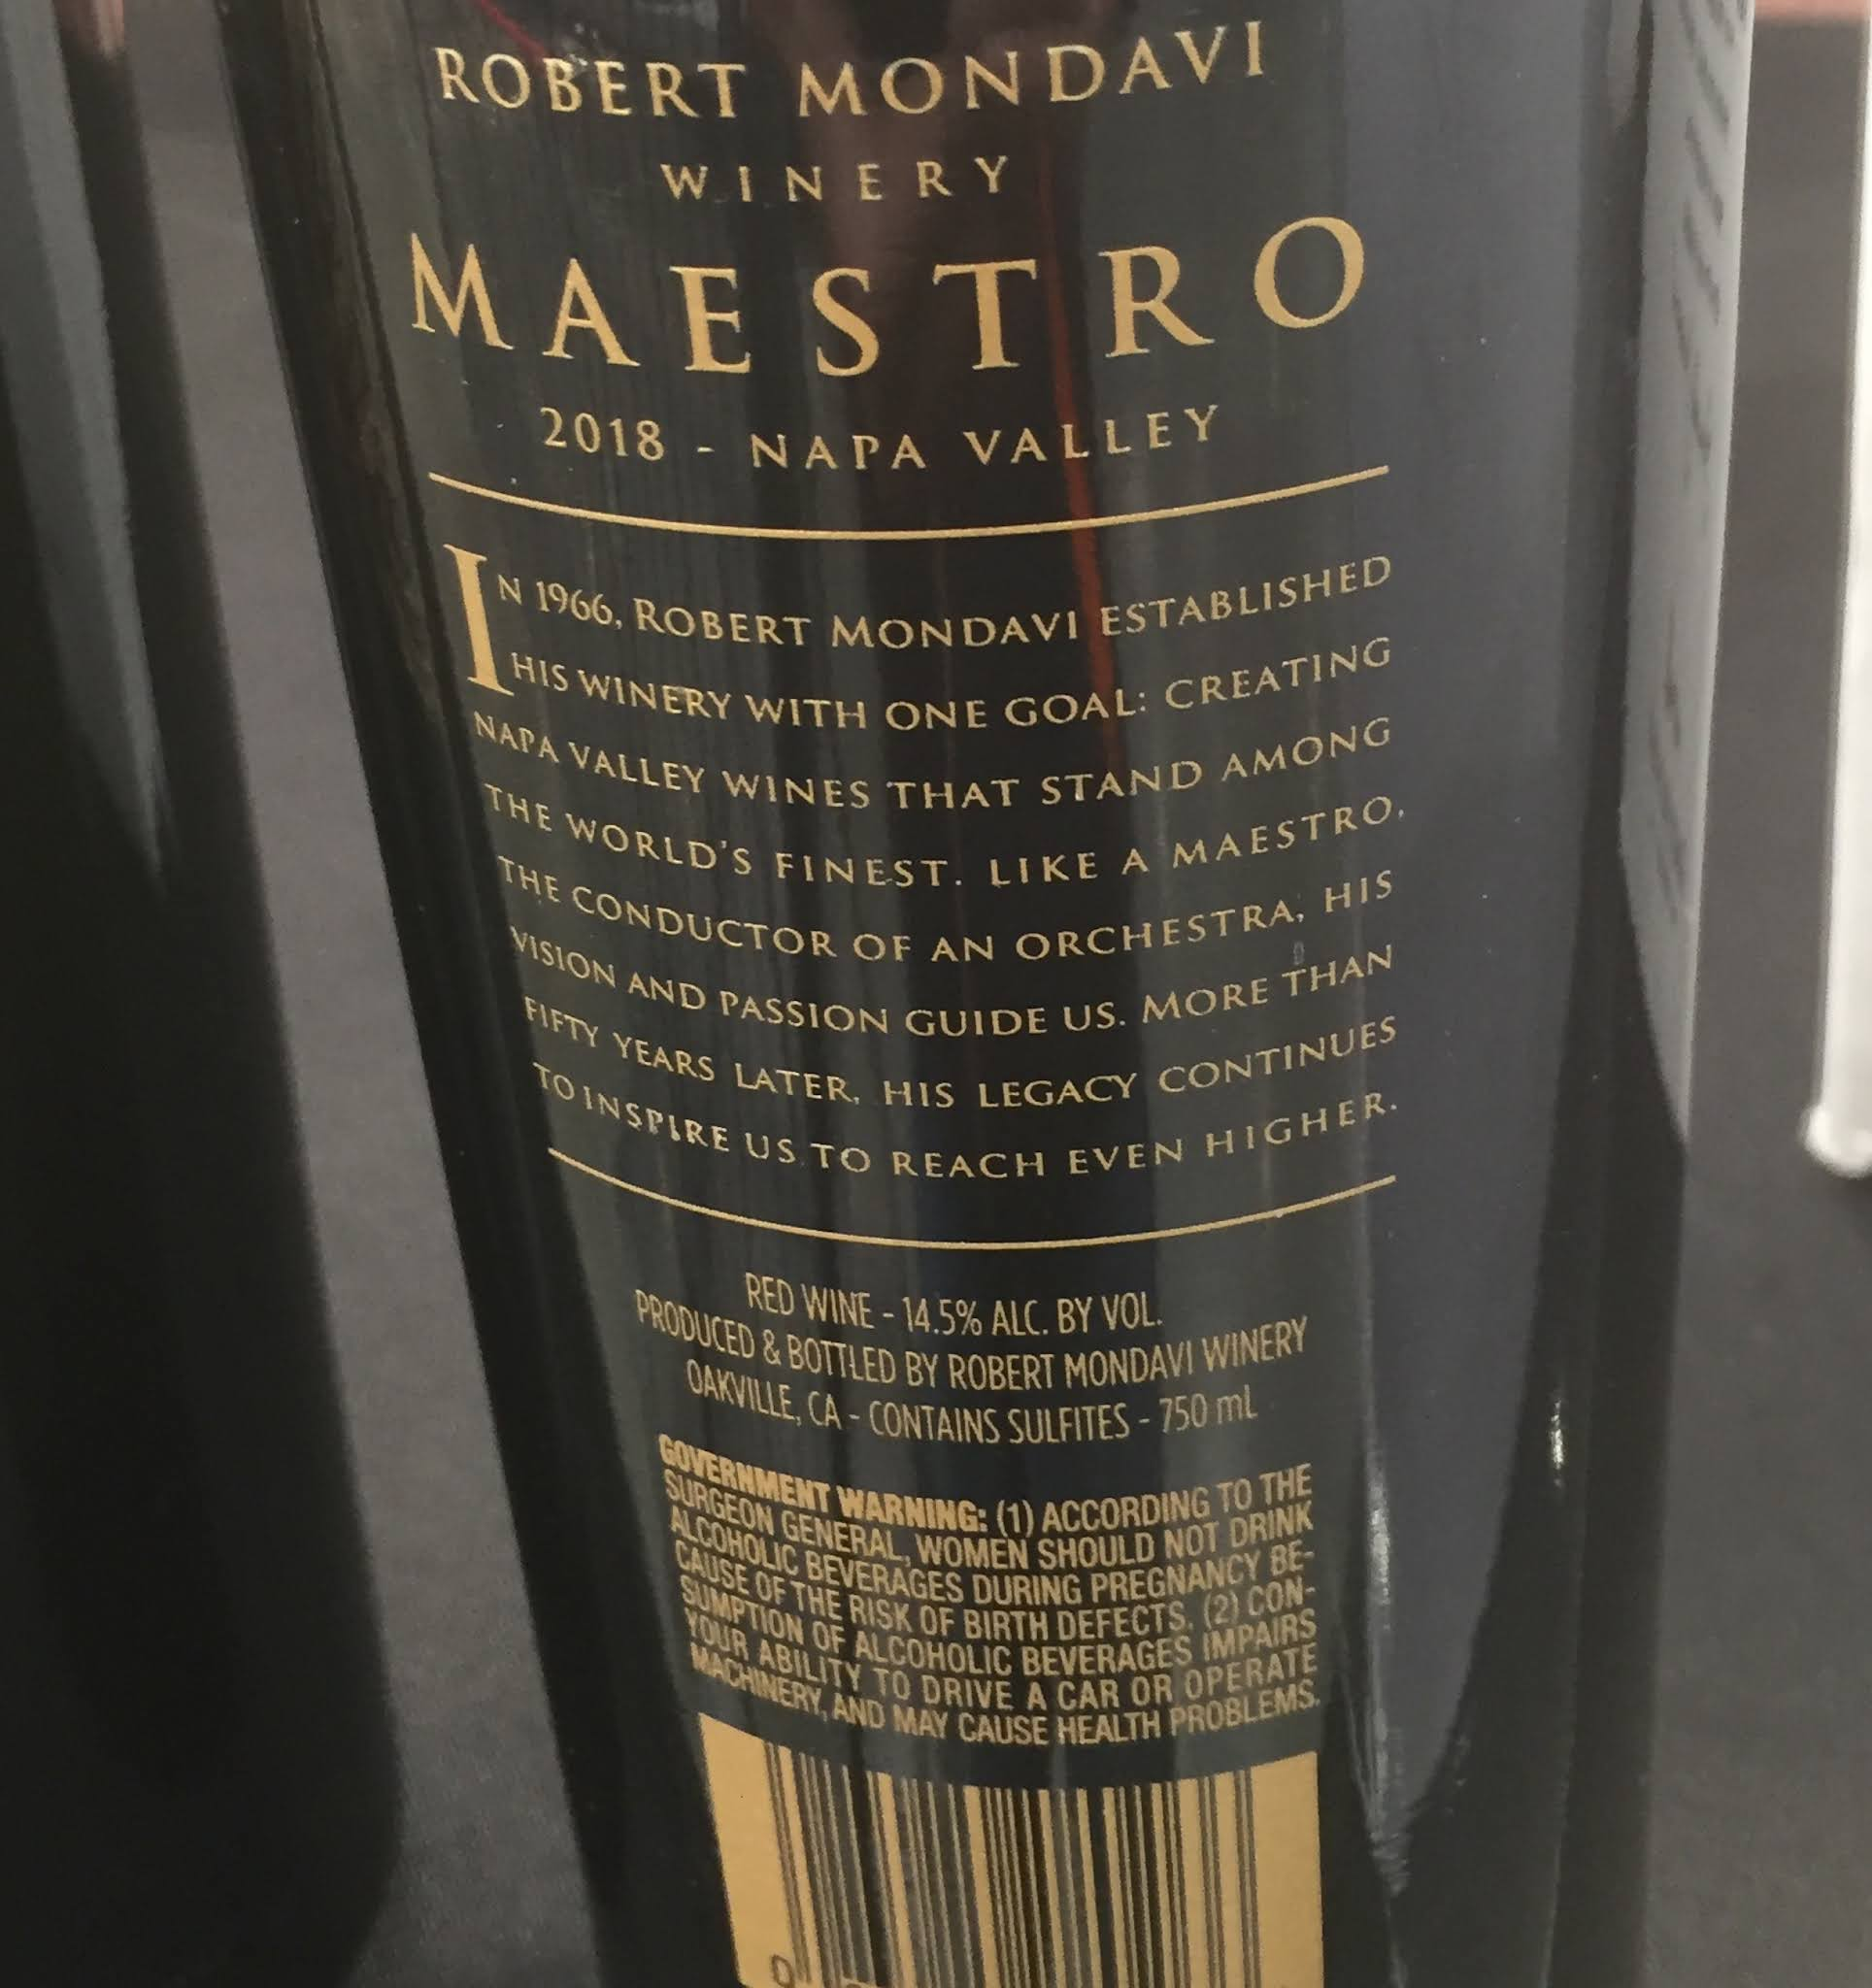 Costco 1077392 - Robert Mondavi Winery Maestro Red Blend: great for any wine lover